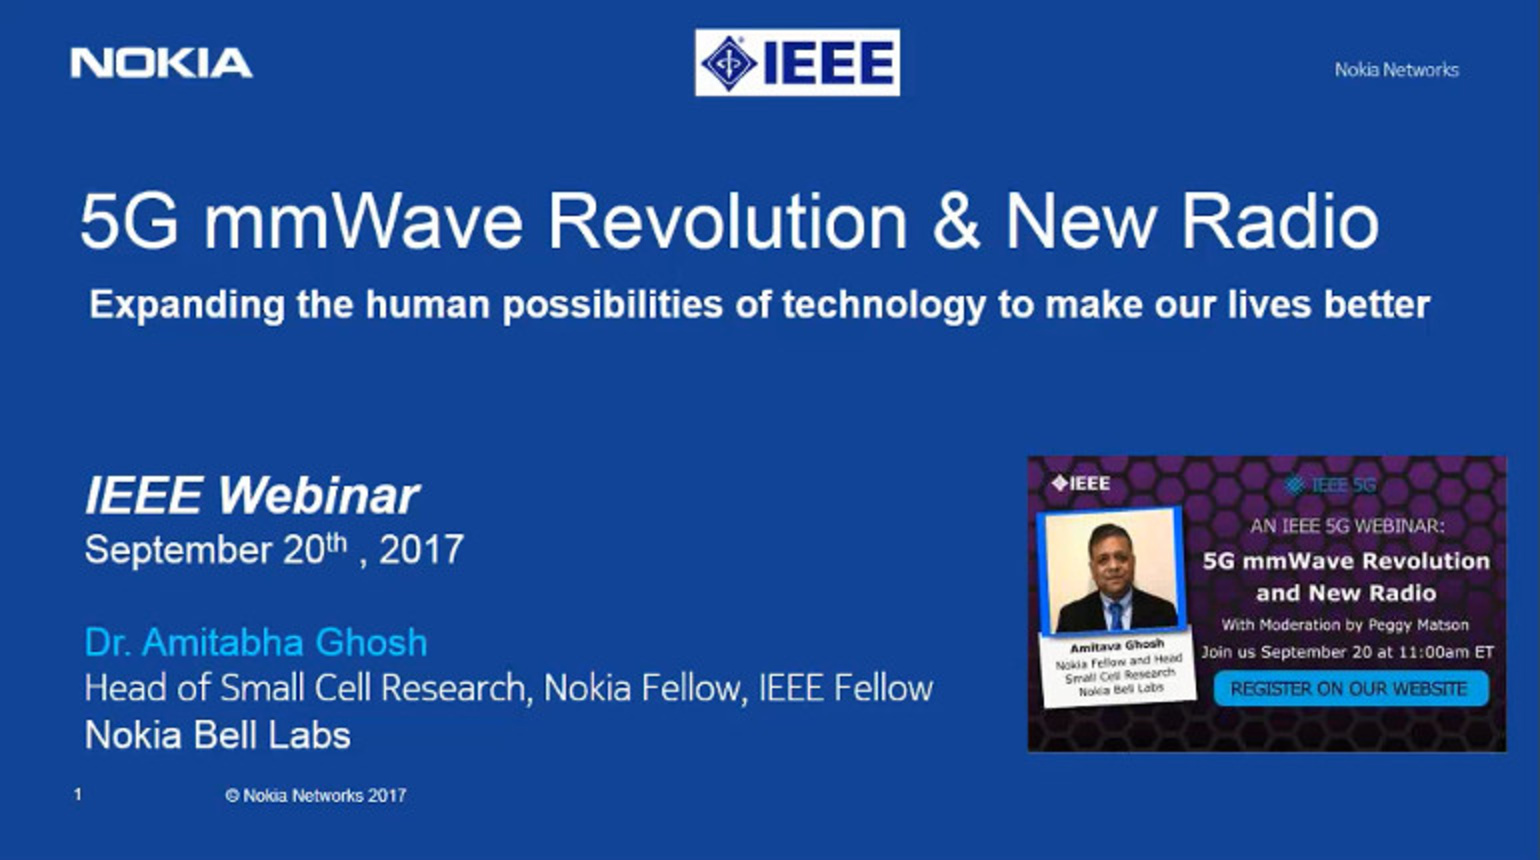 IEEE Future Networks: 5G mmWave Revolution and New Radio